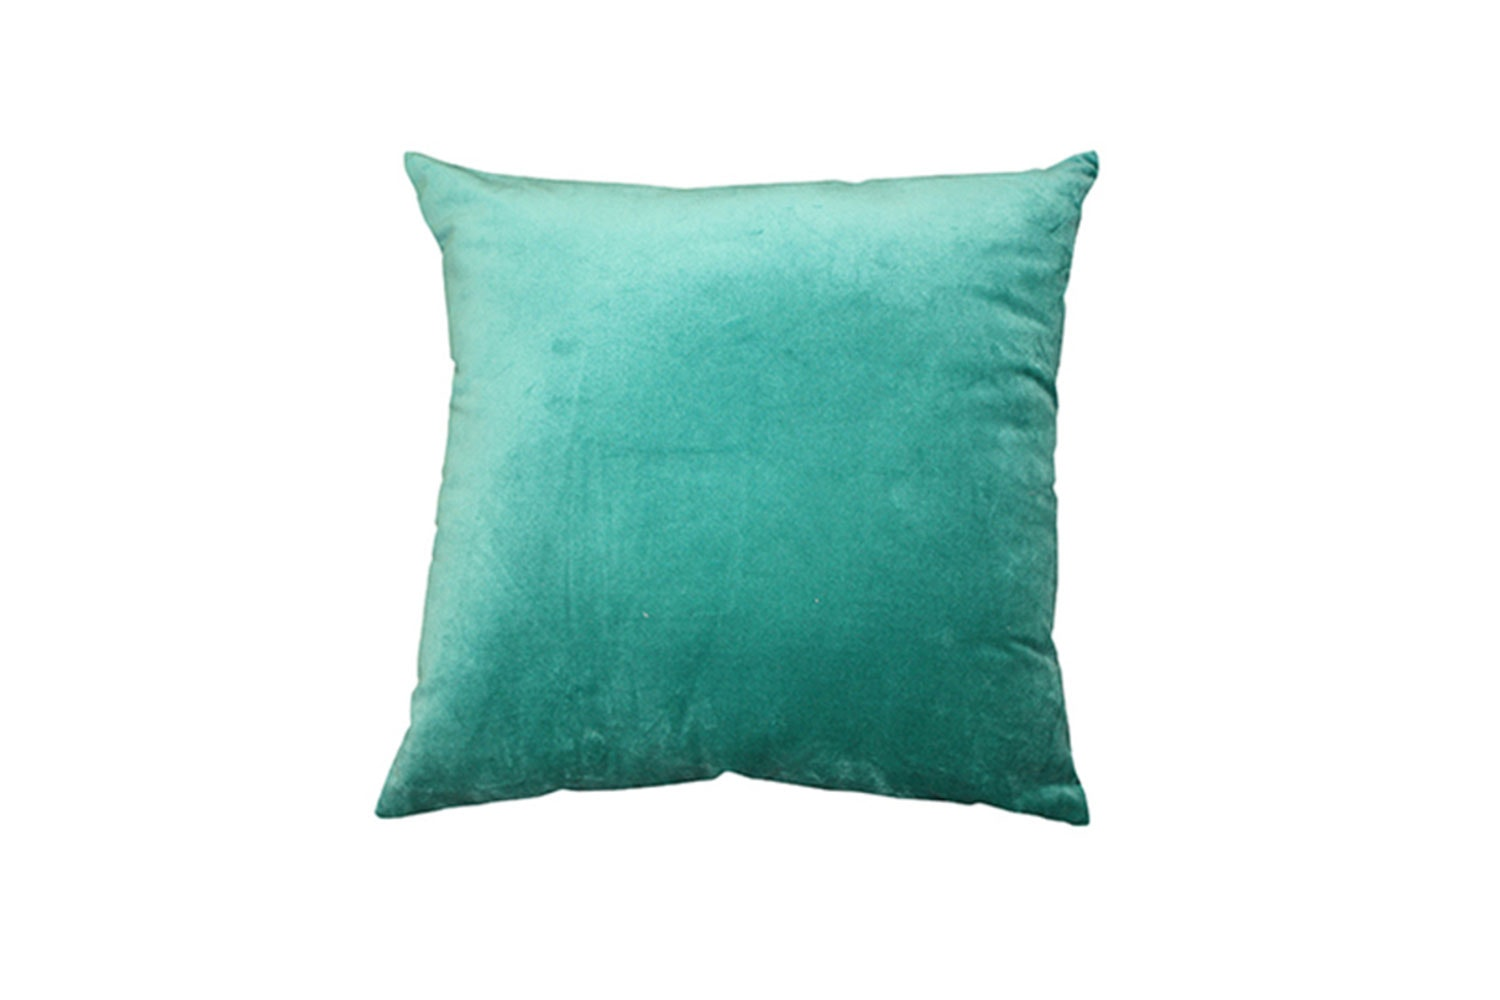 Regal Feather Filled Velvet Cushion by Mulberi